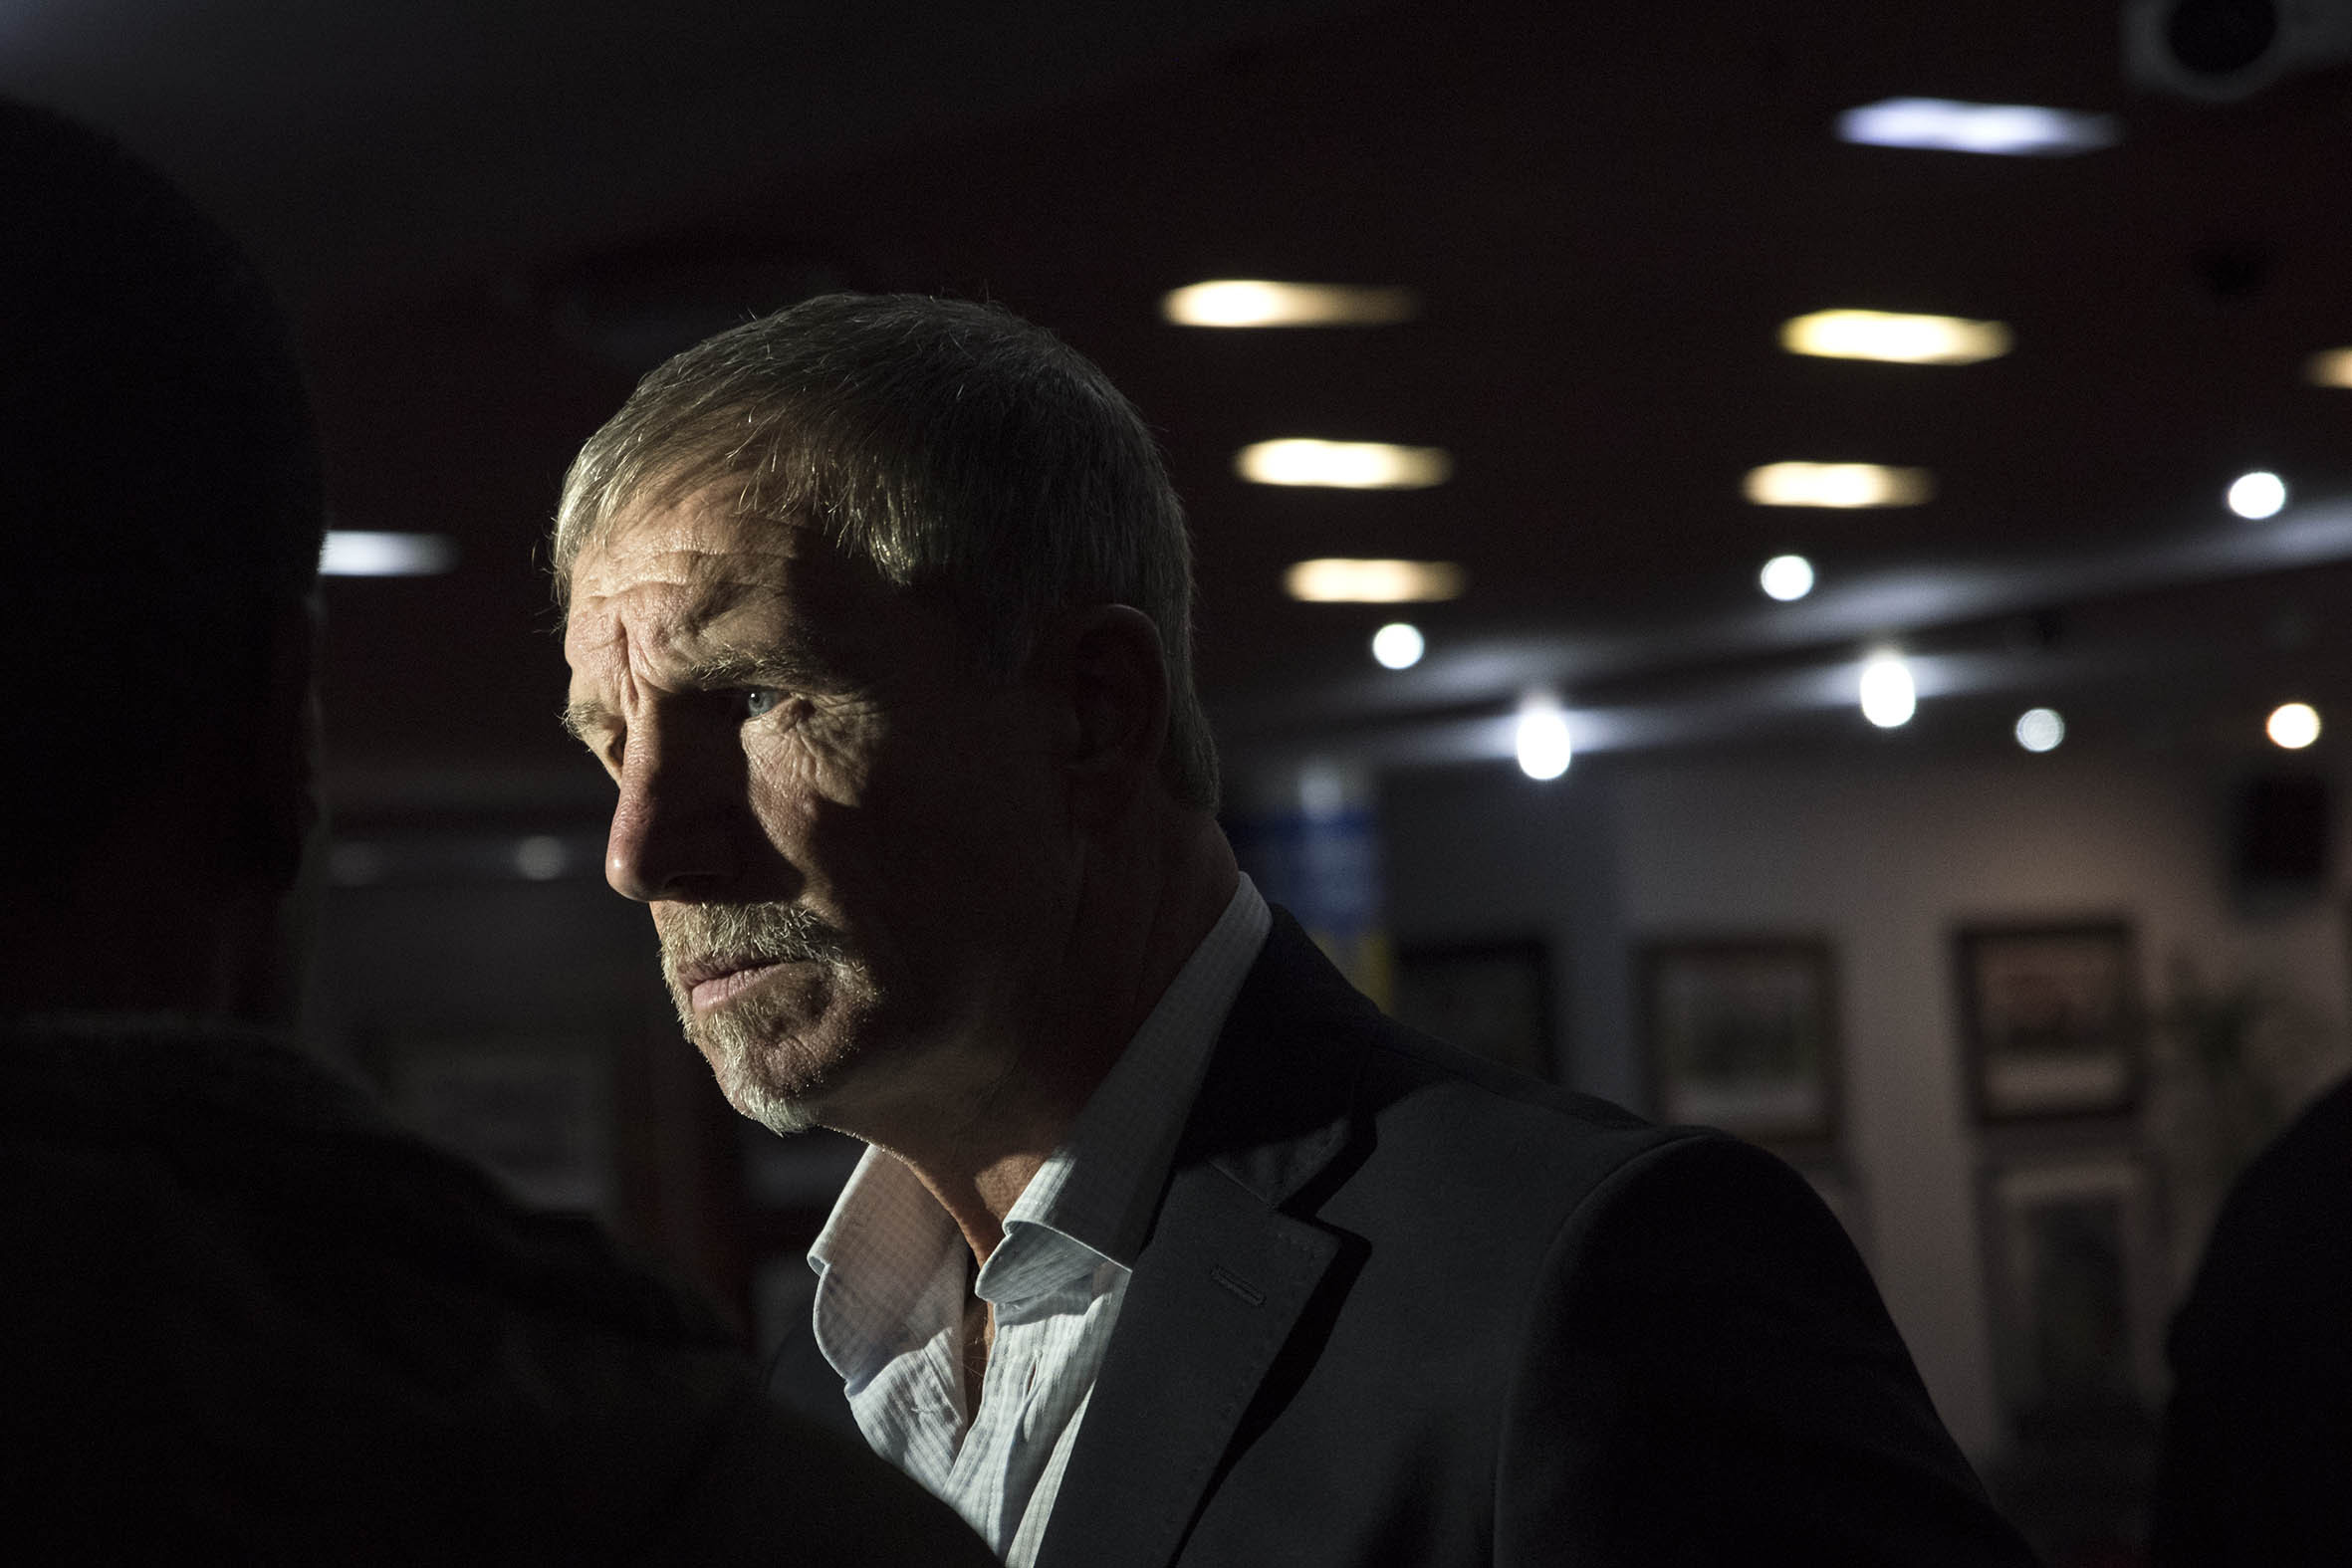 28 August 2018: Bafana Bafana coach Stuart Baxter at Safa House at a press conference announcing the squad that will face Libya in the Africa Cup of Nations qualifier in Durban on Saturday 8 September 2018.